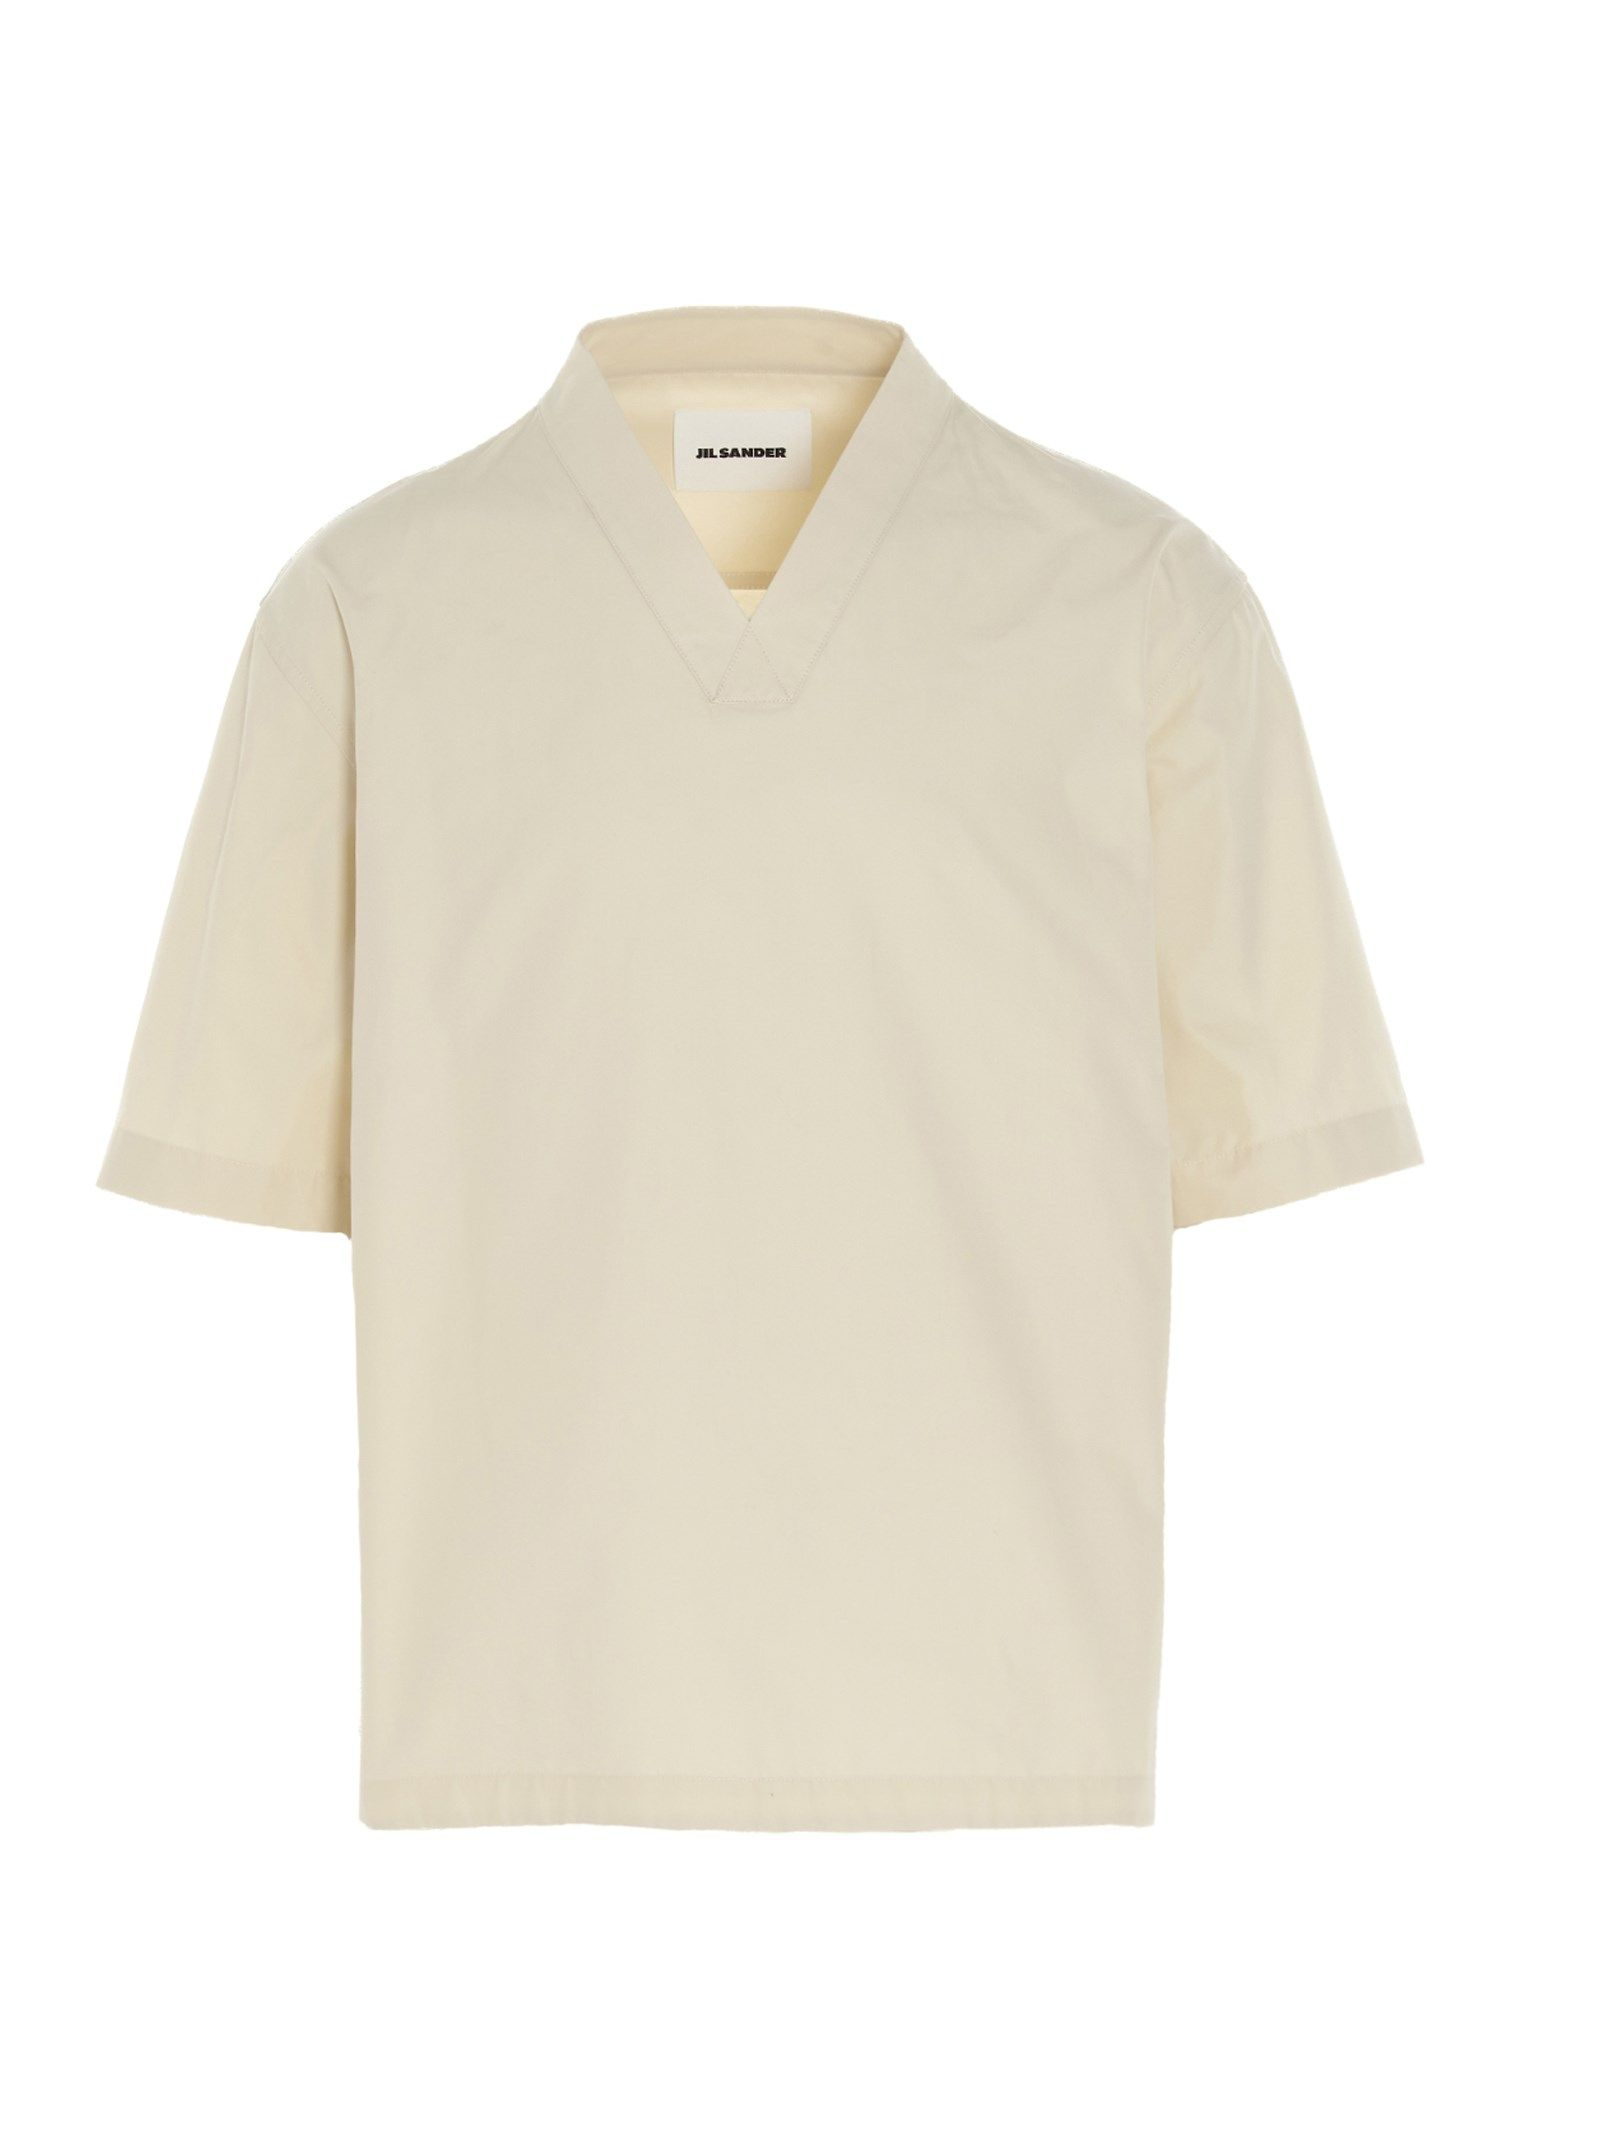 Jil Sander Cottons JIL SANDER MEN'S BEIGE OTHER MATERIALS SHIRT